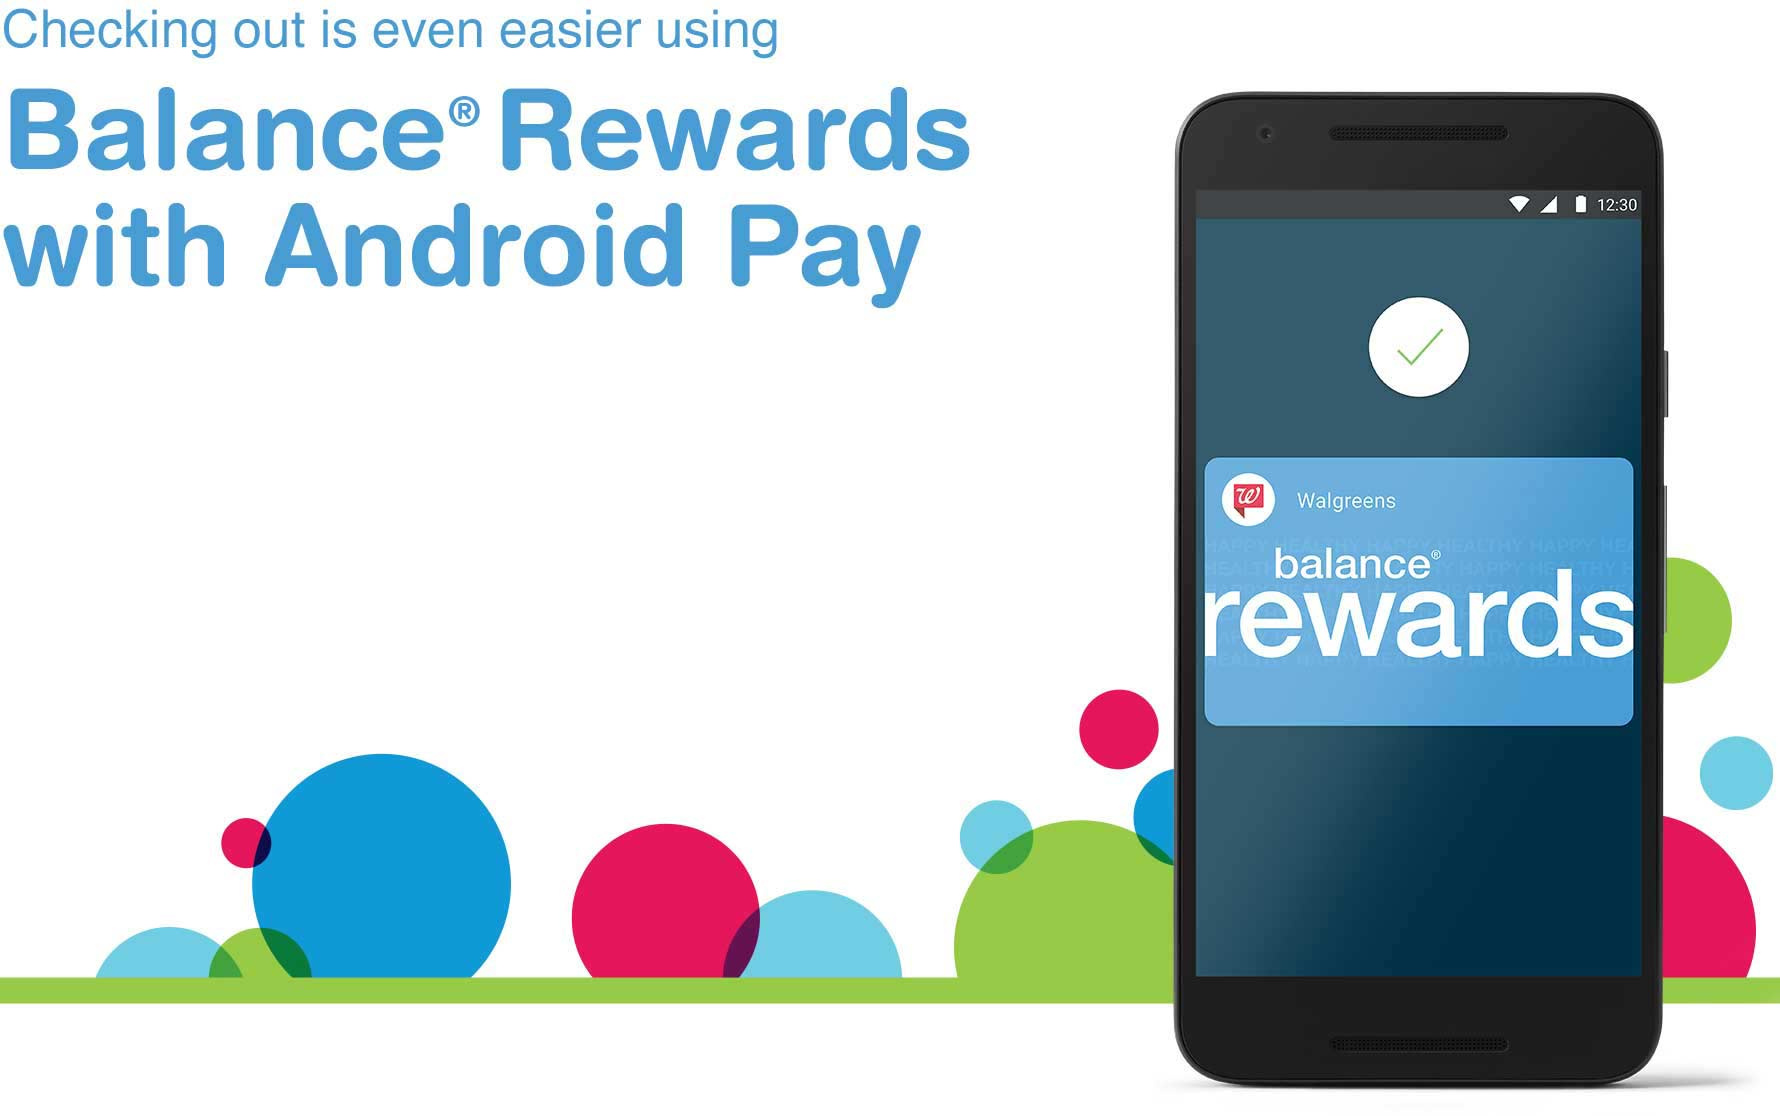 Android Pay and Balance Rewards